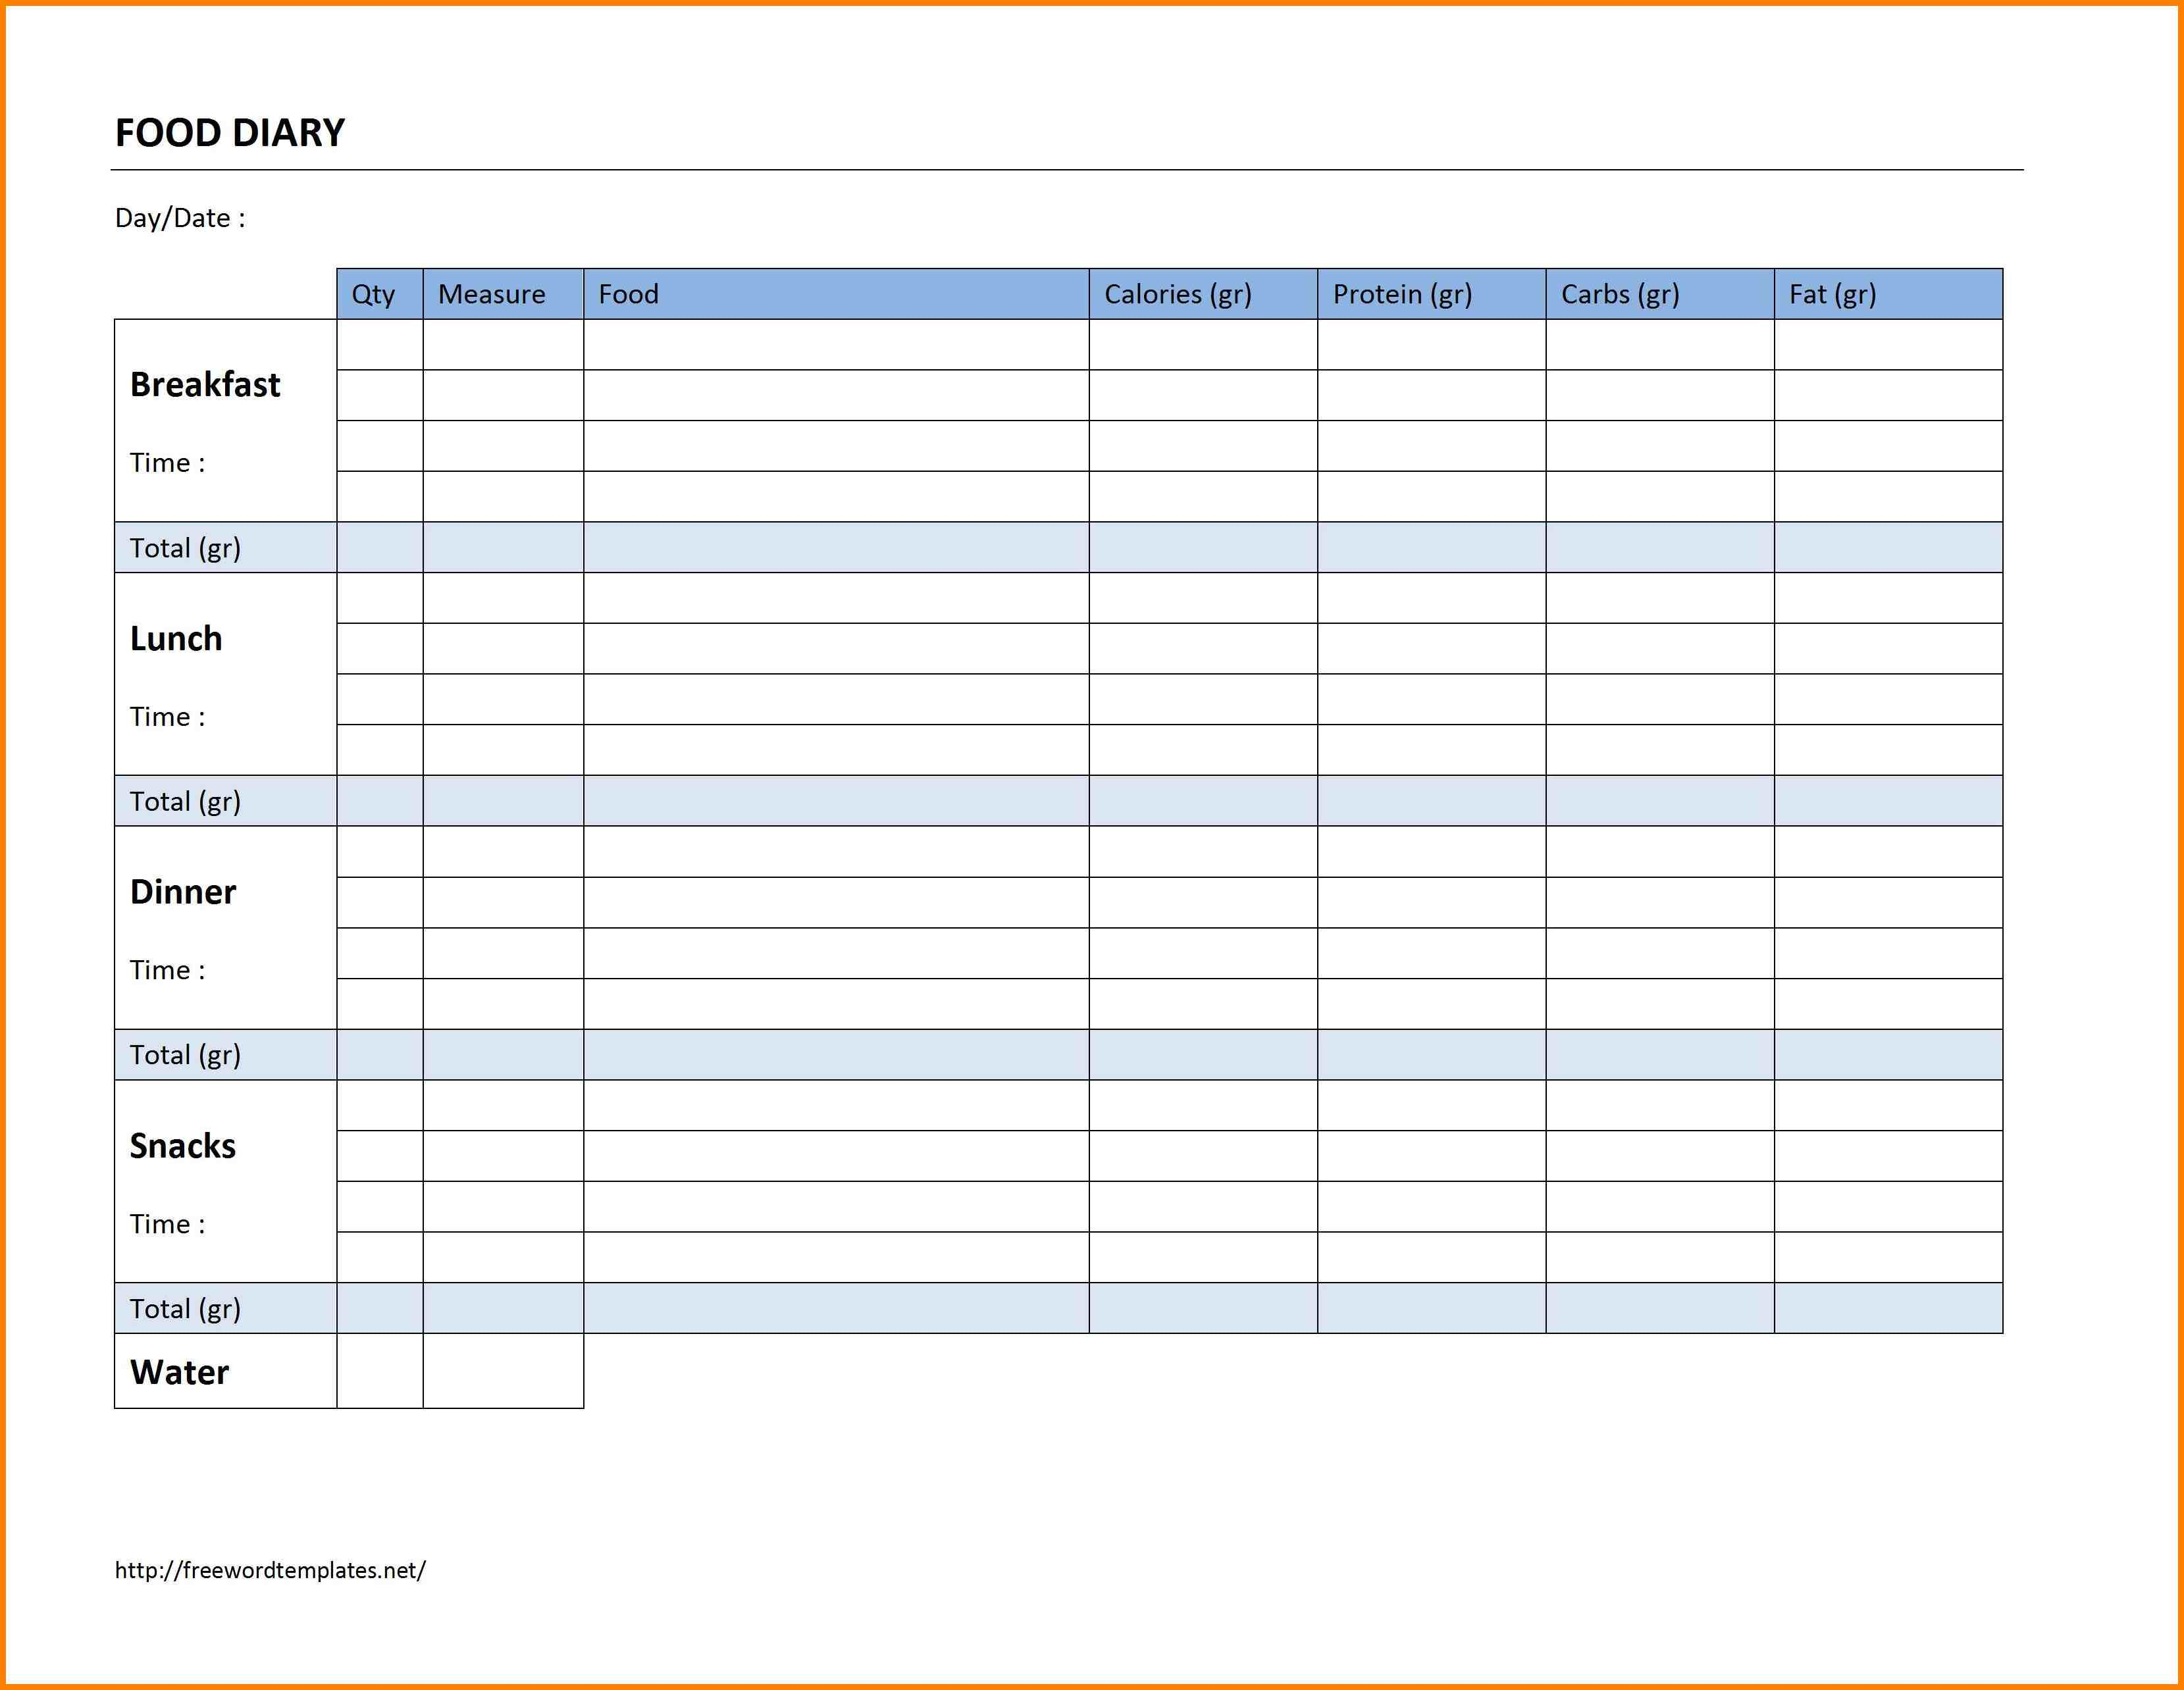 Slimming World Food Diary Spreadsheet Throughout Food Diary Template  Hashtag Bg